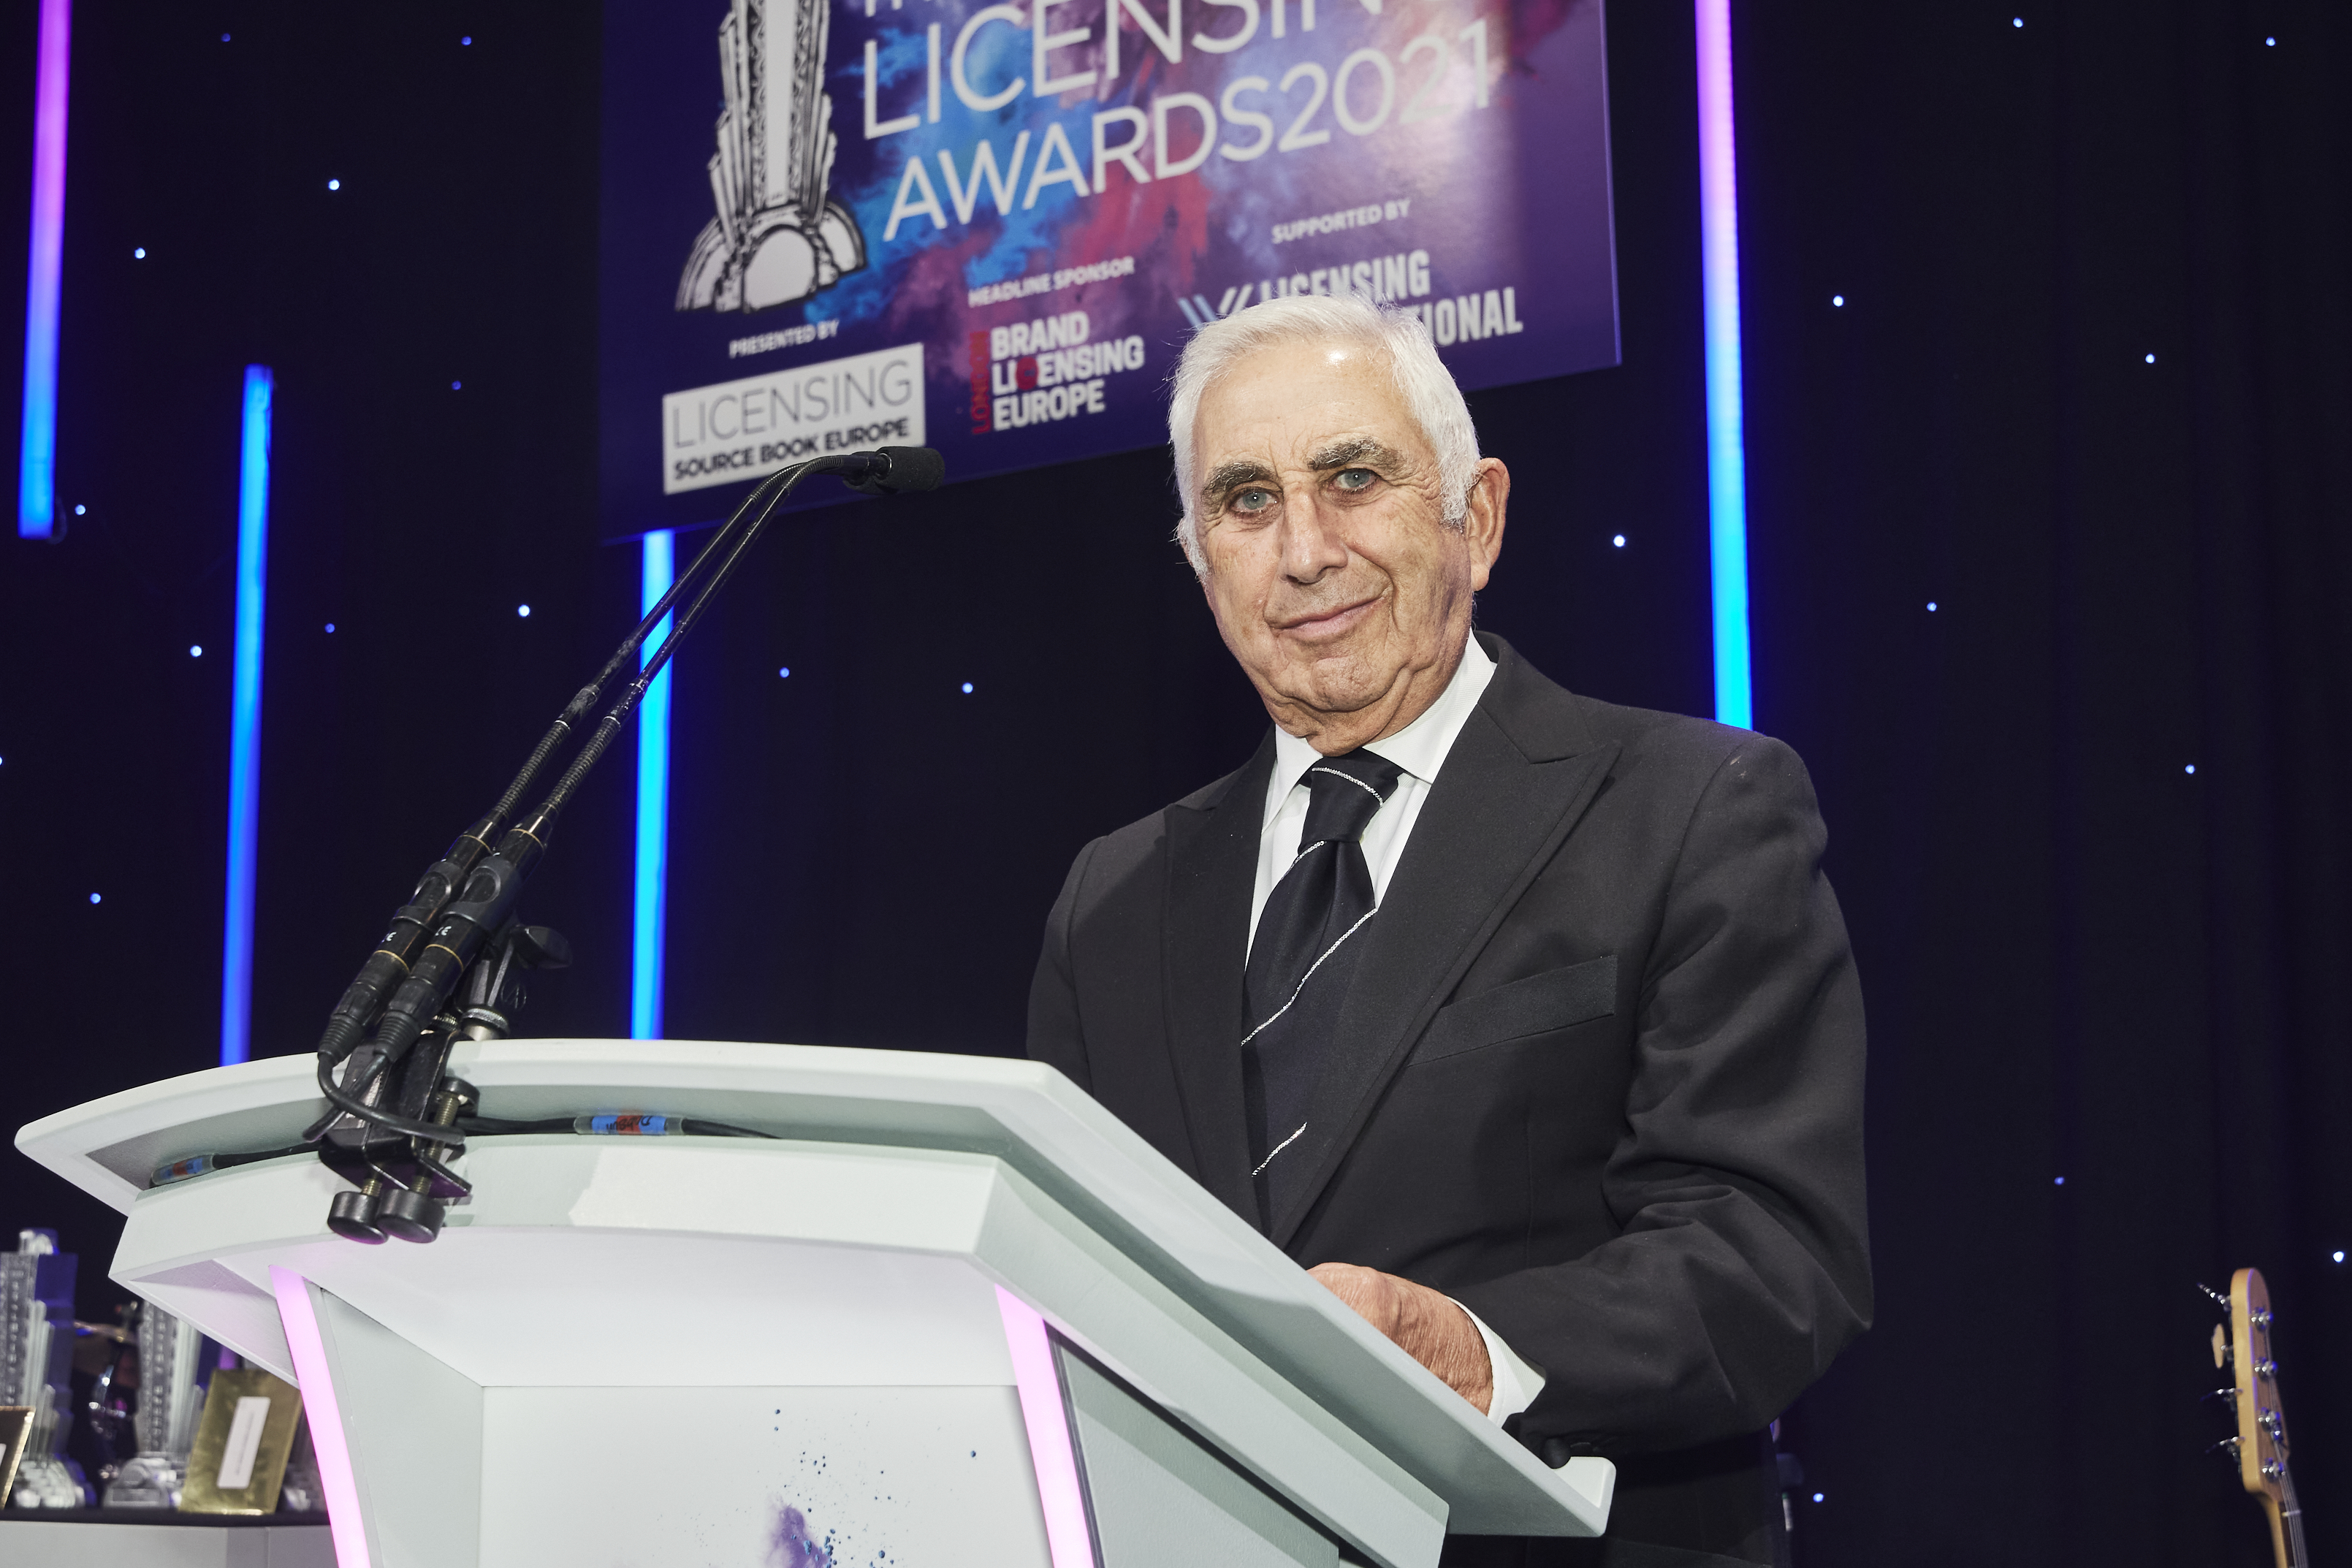 Above: Danilo's founder and chairman Laurence Prince presenting an award at the recent Licensing Awards.